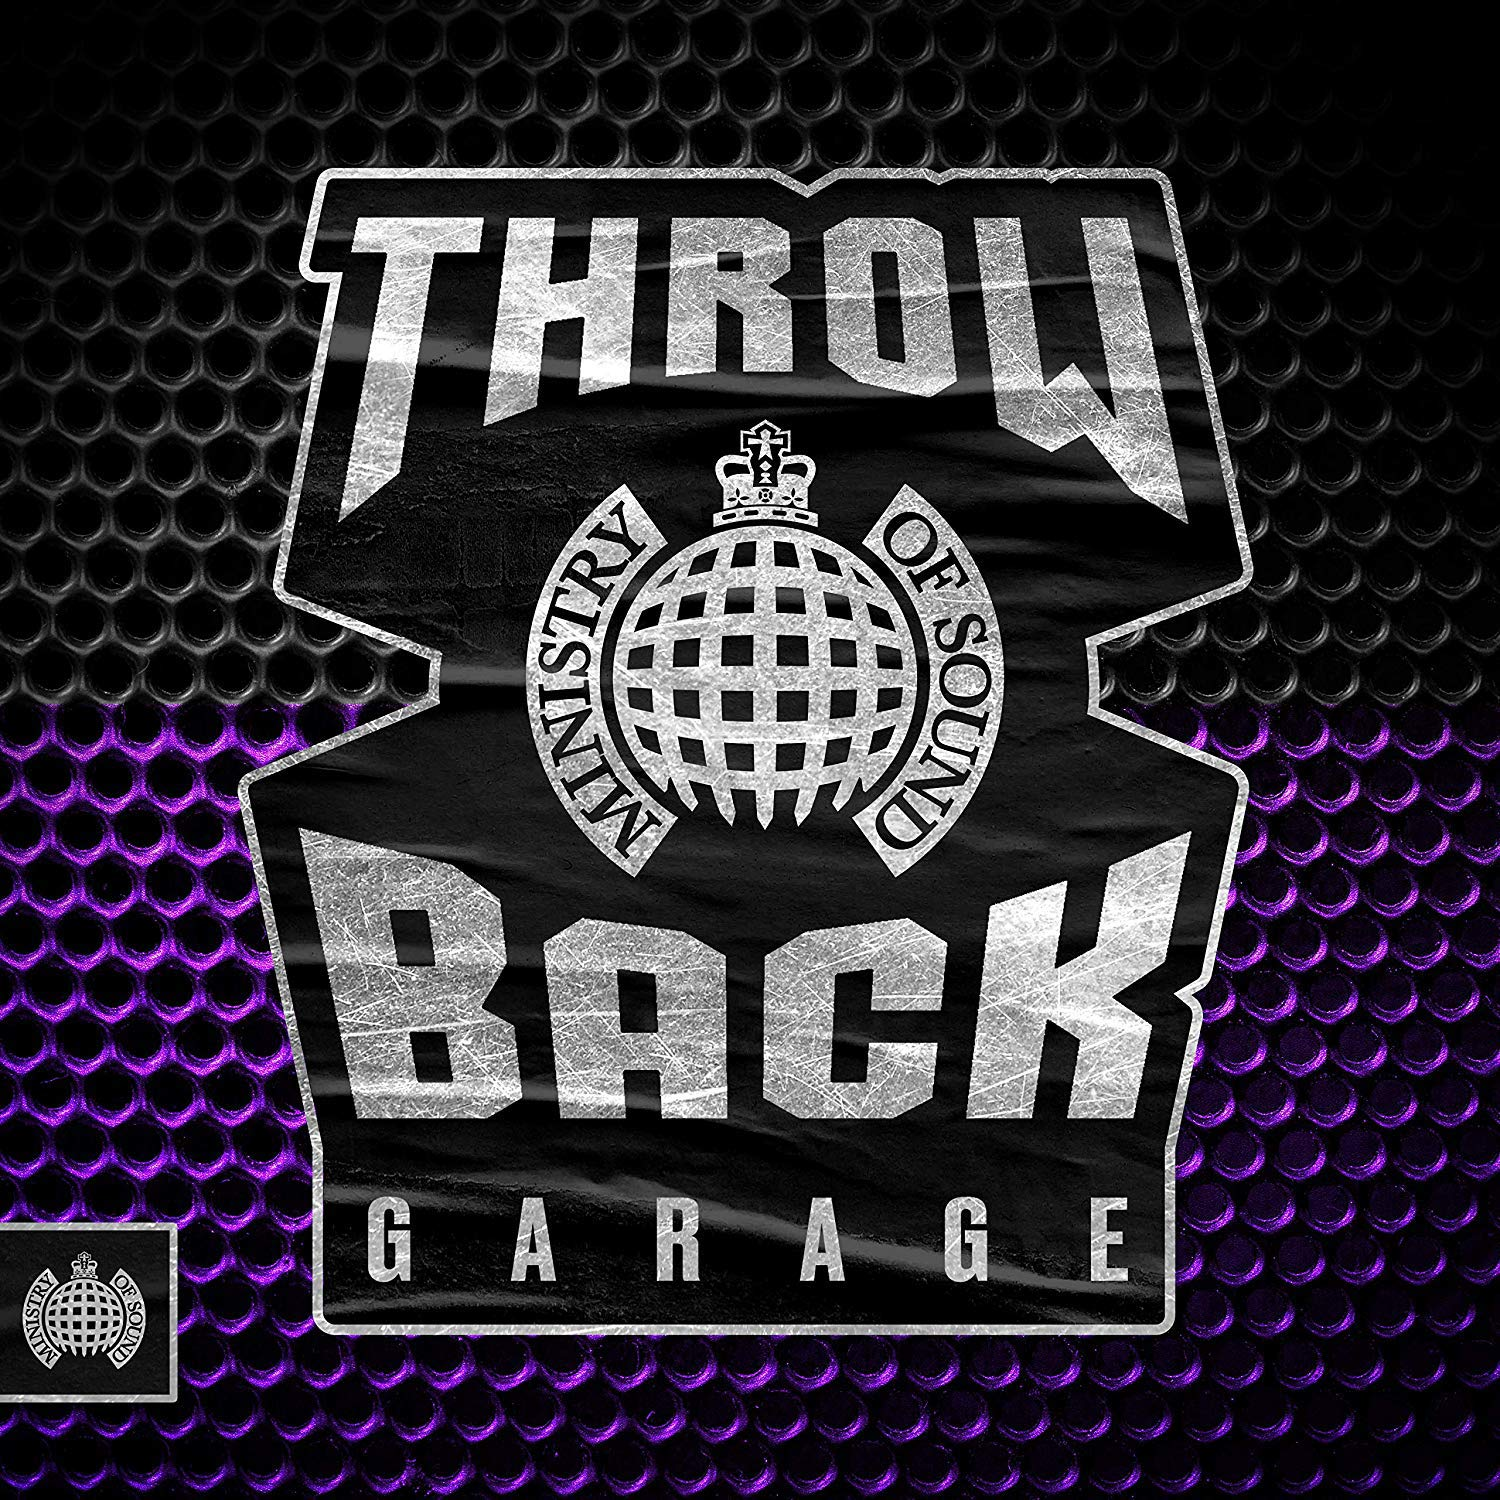 VA - Ministry of Sound  Throwback Garage (2019) [FLAC] Download